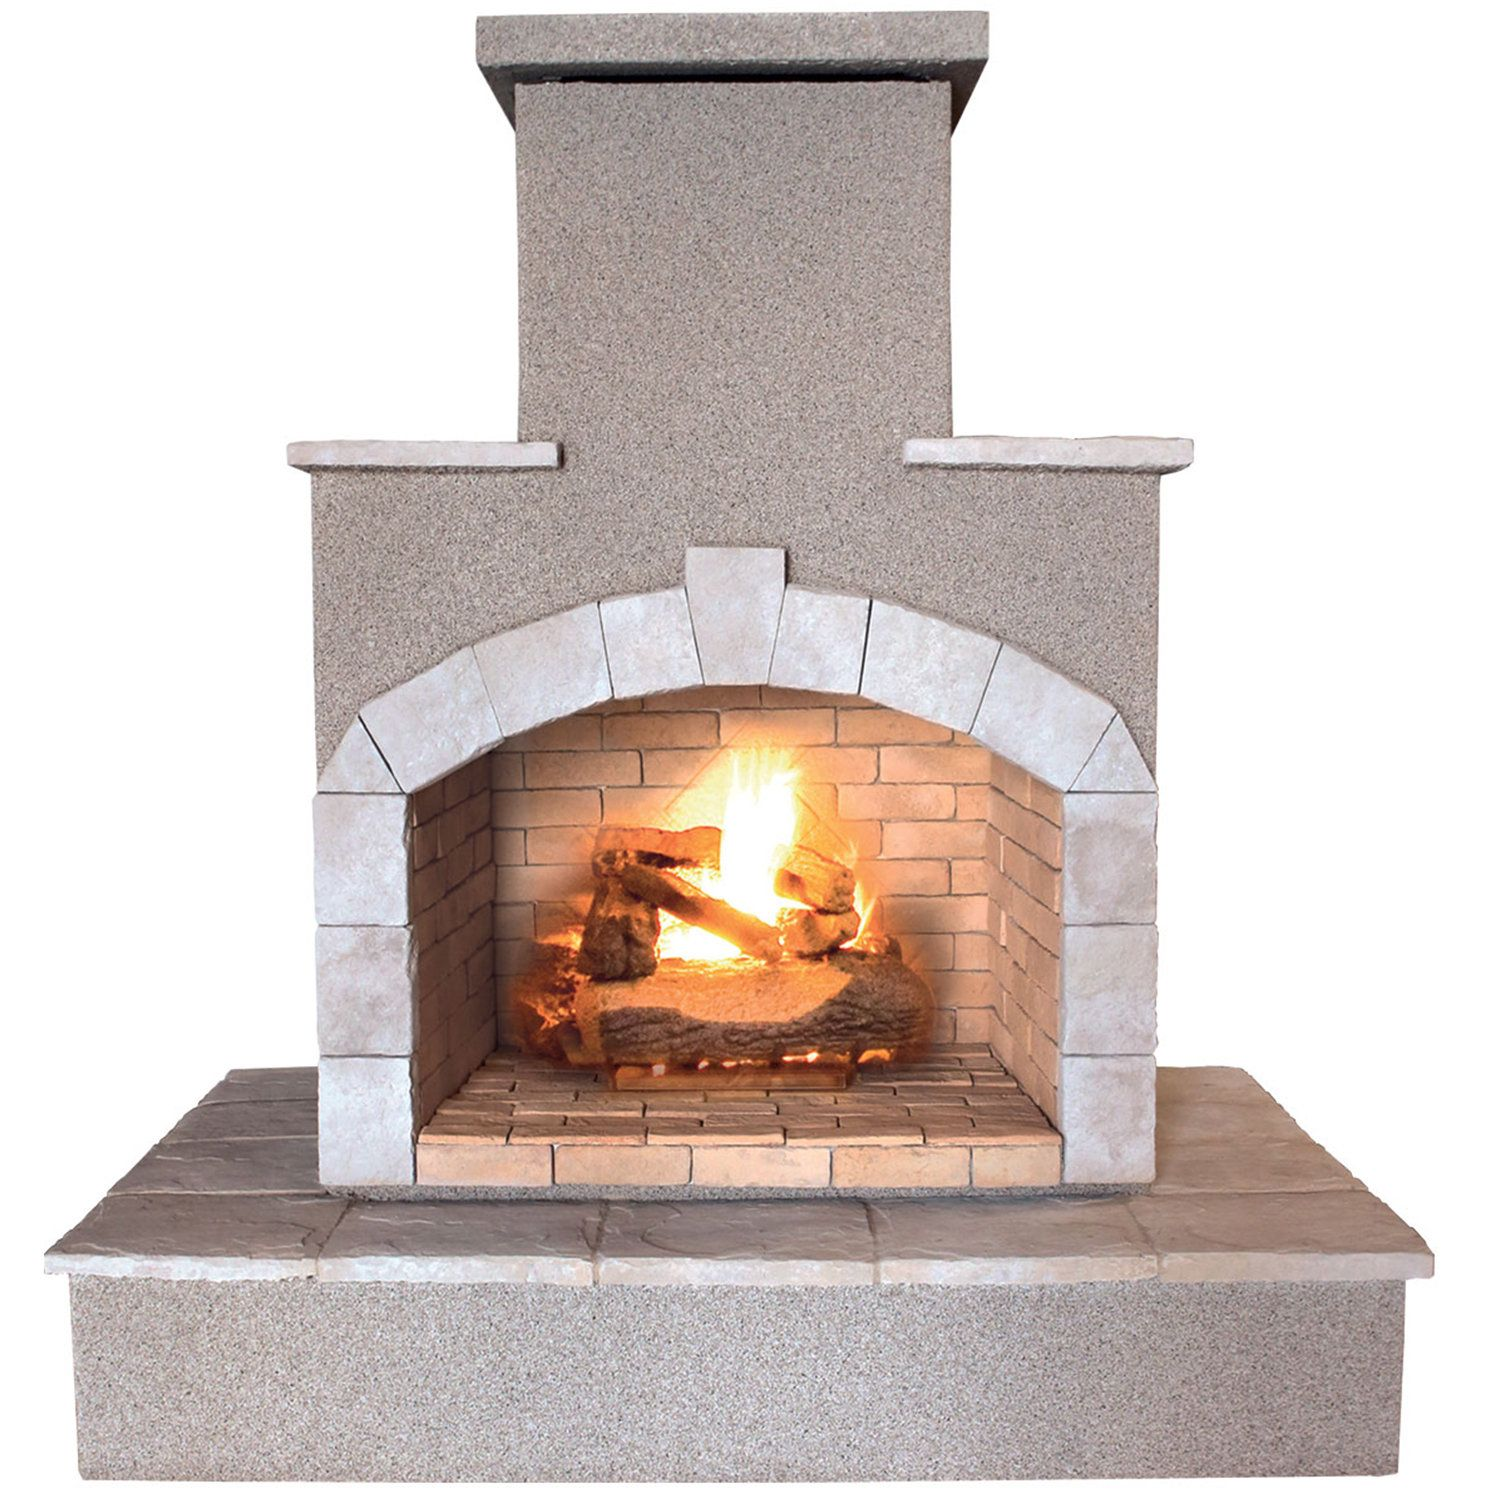 78 Inch Propane Gas Outdoor Fireplace Brown Cal Flame Stone